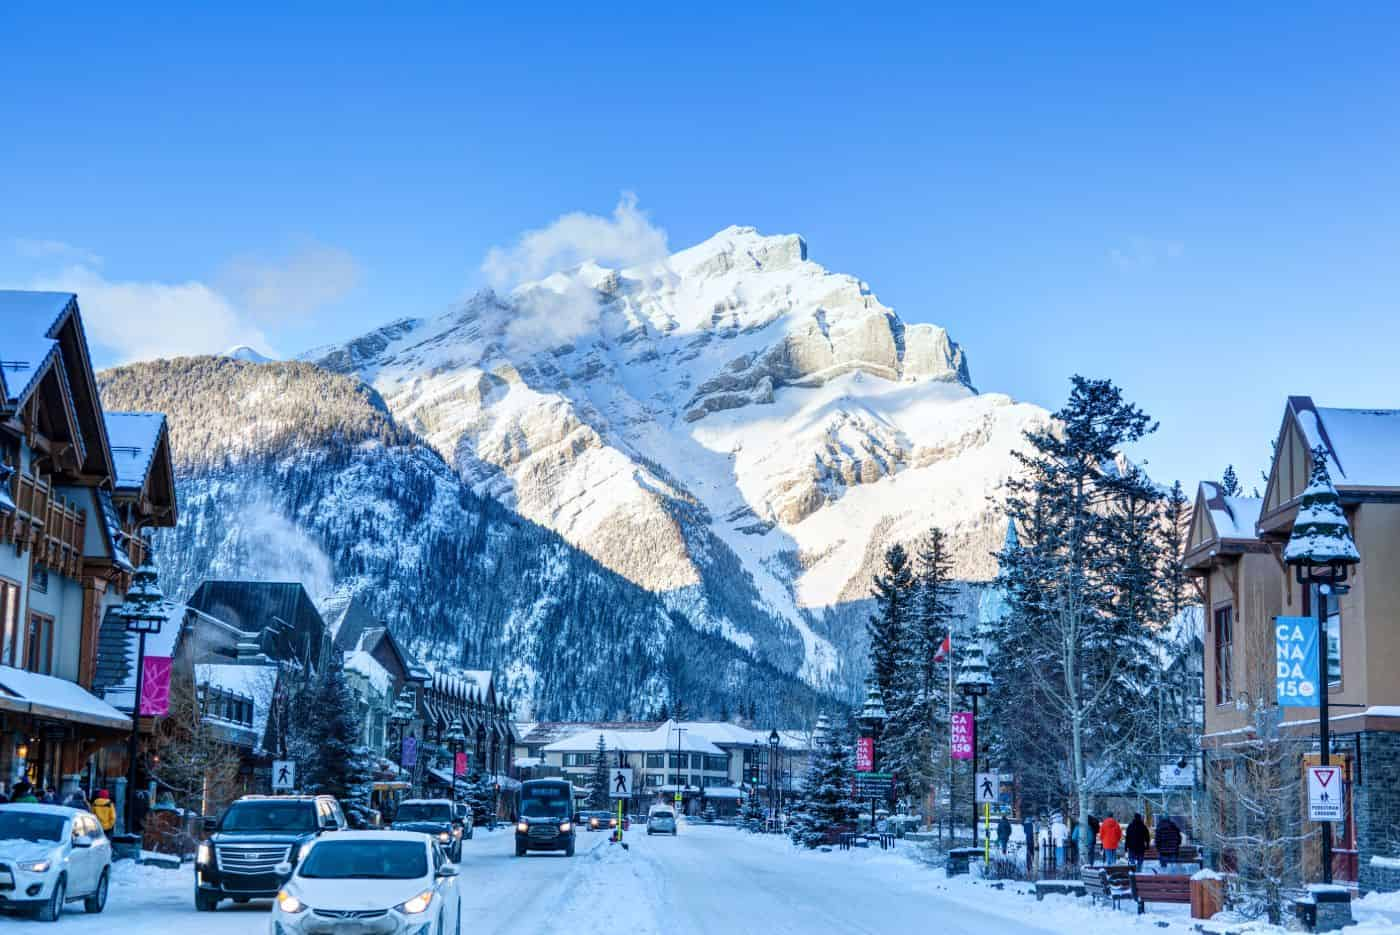 Winter in Banff downtown